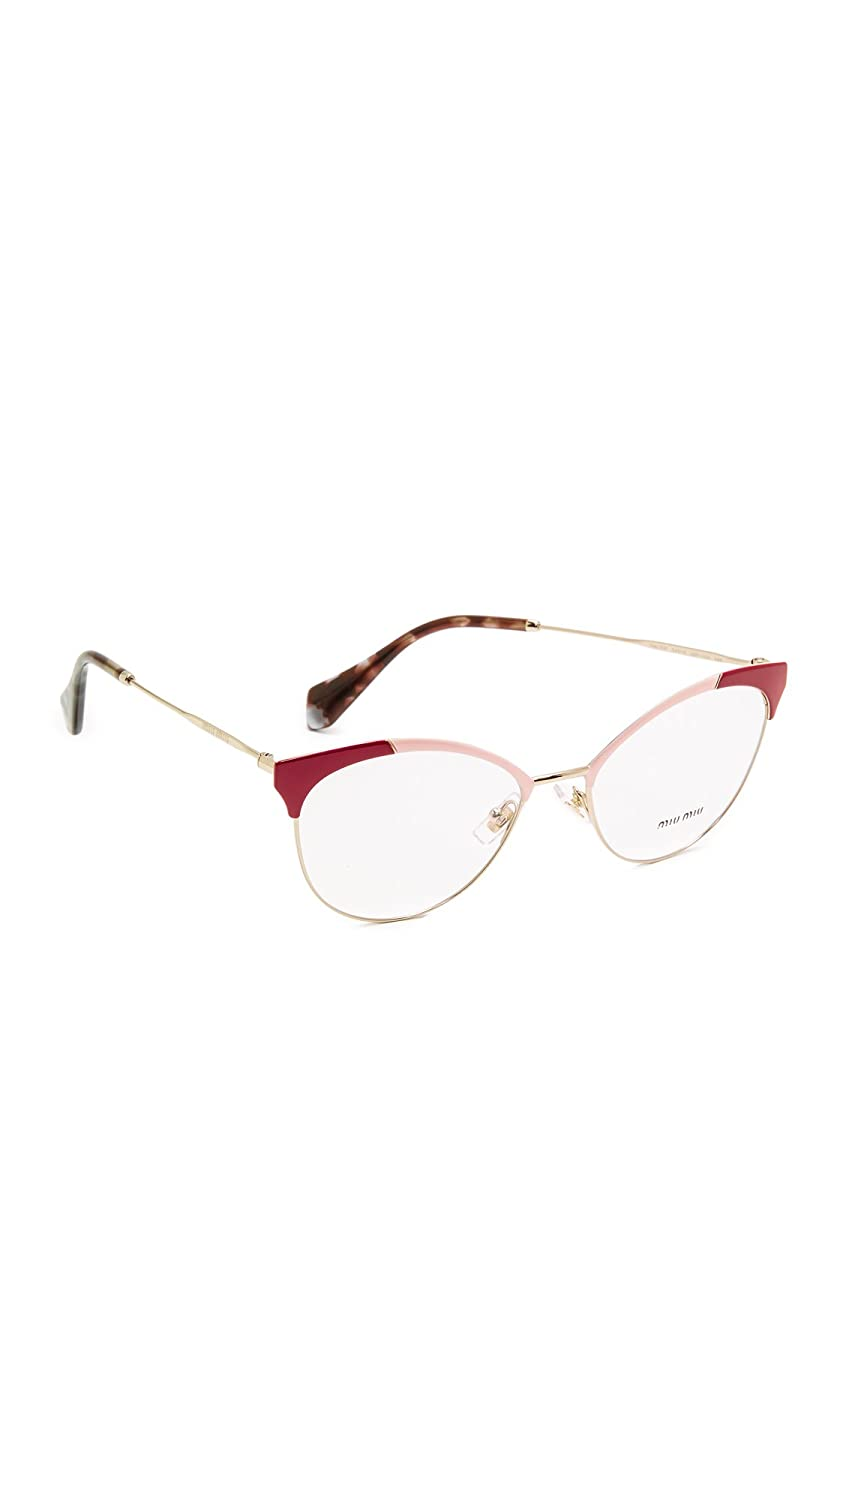 239973a0137 Amazon.com  Miu Miu Women s Colorblock Glasses